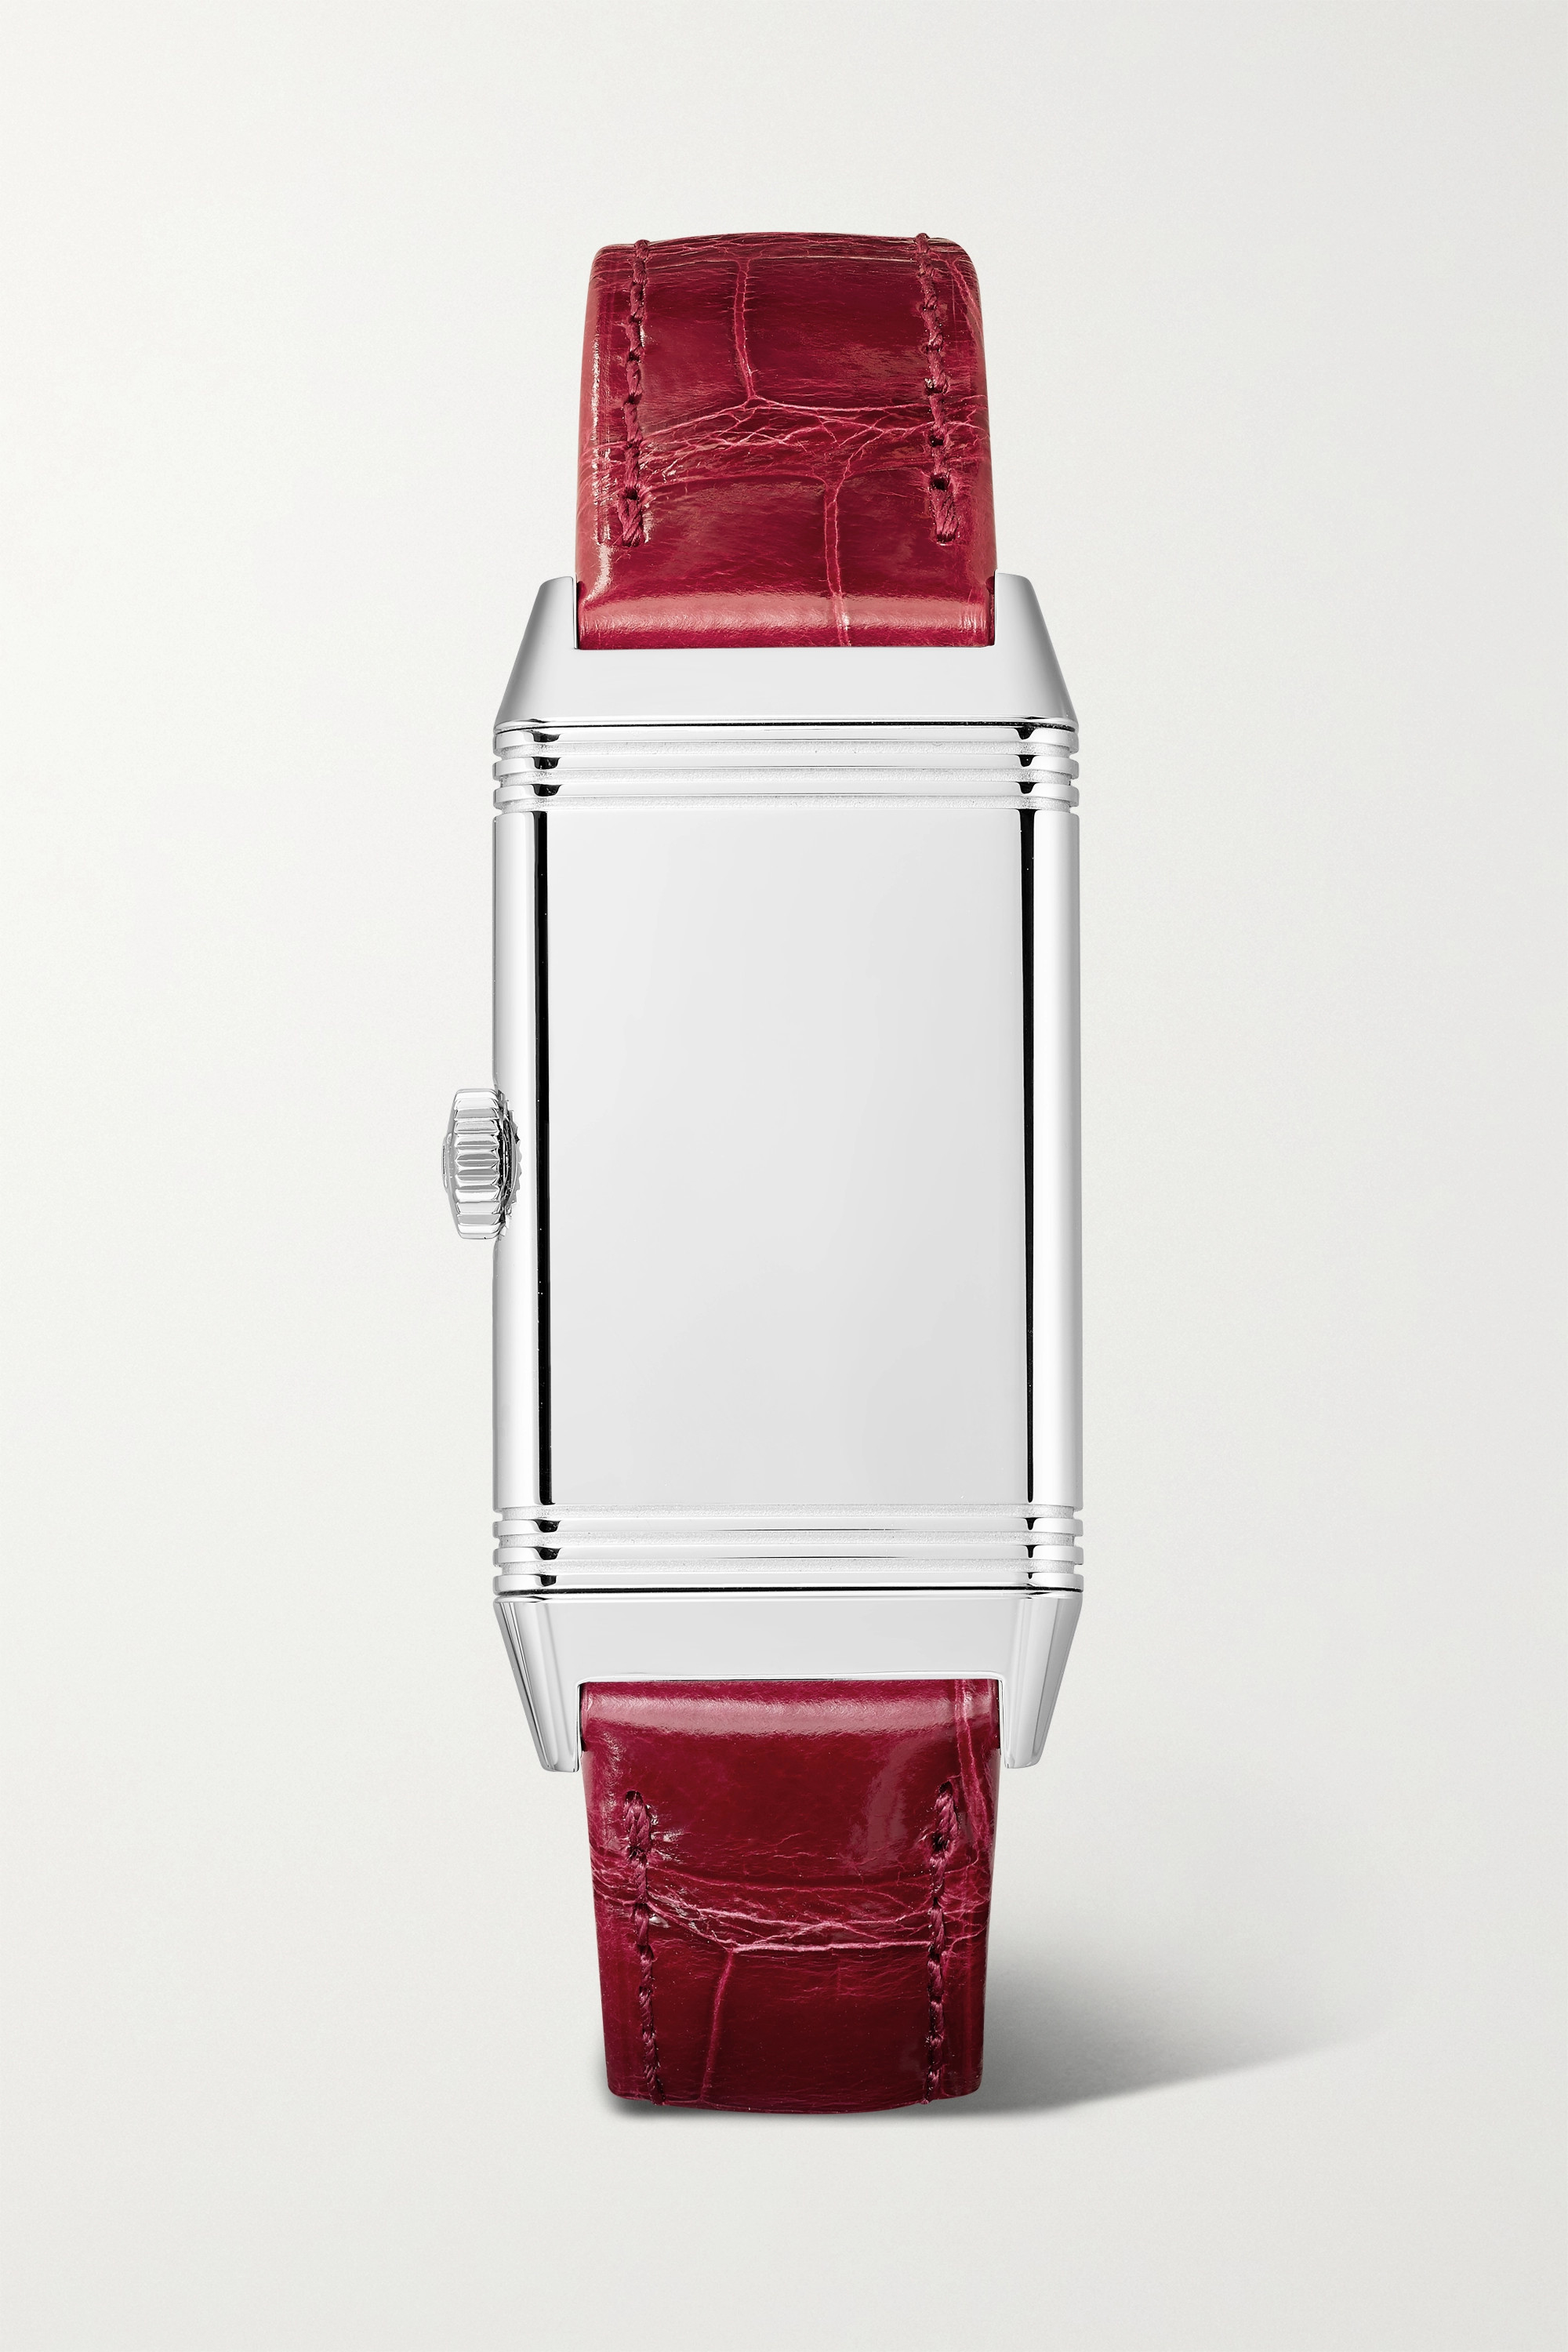 Jaeger-LeCoultre Reverso One 20mm stainless steel, diamond and alligator watch